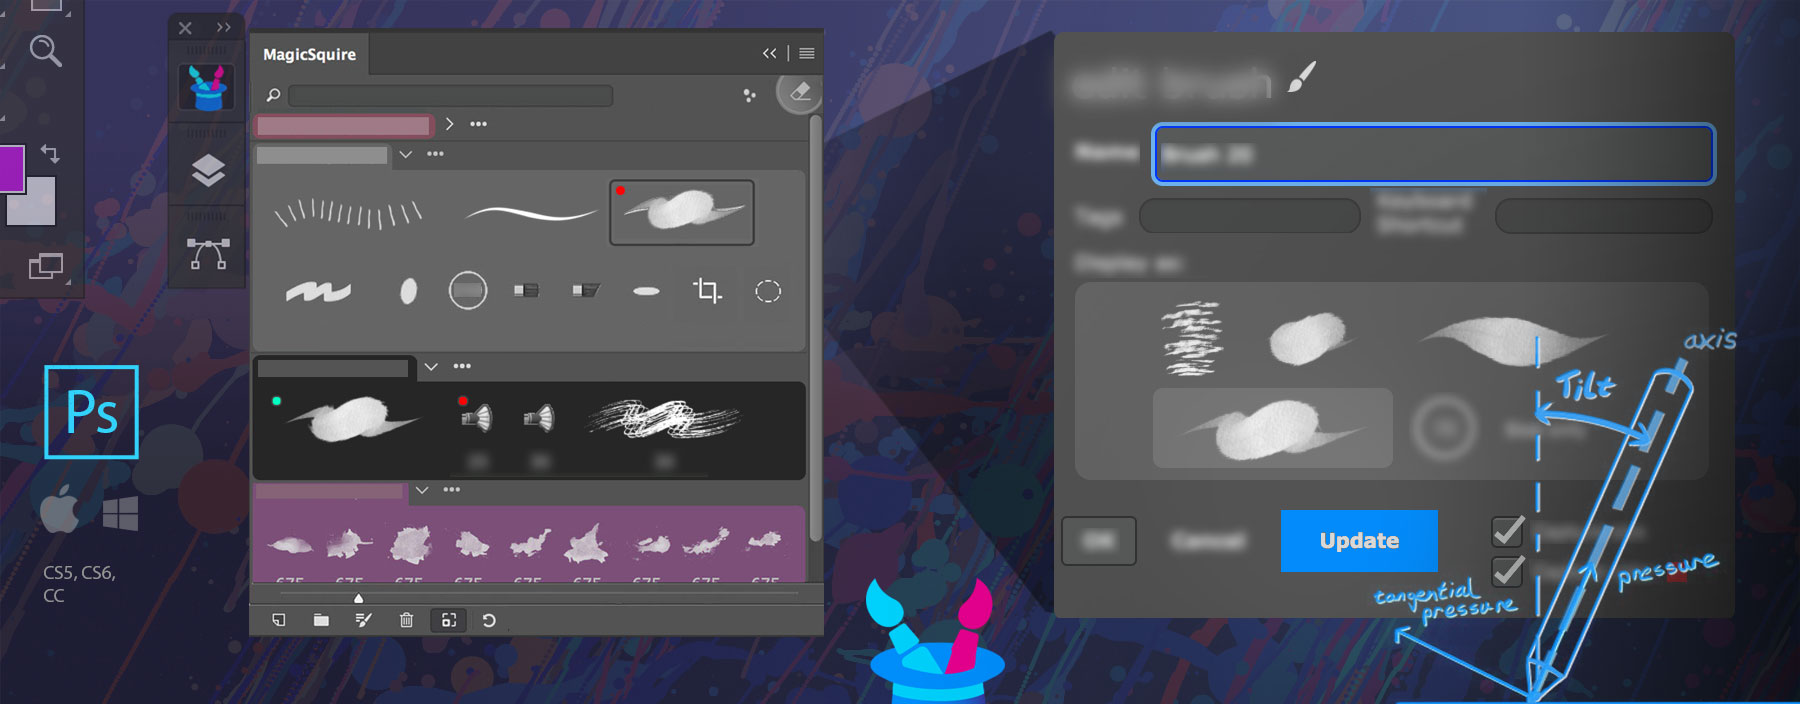 Update brush parameters in Photoshop with MagicSquire